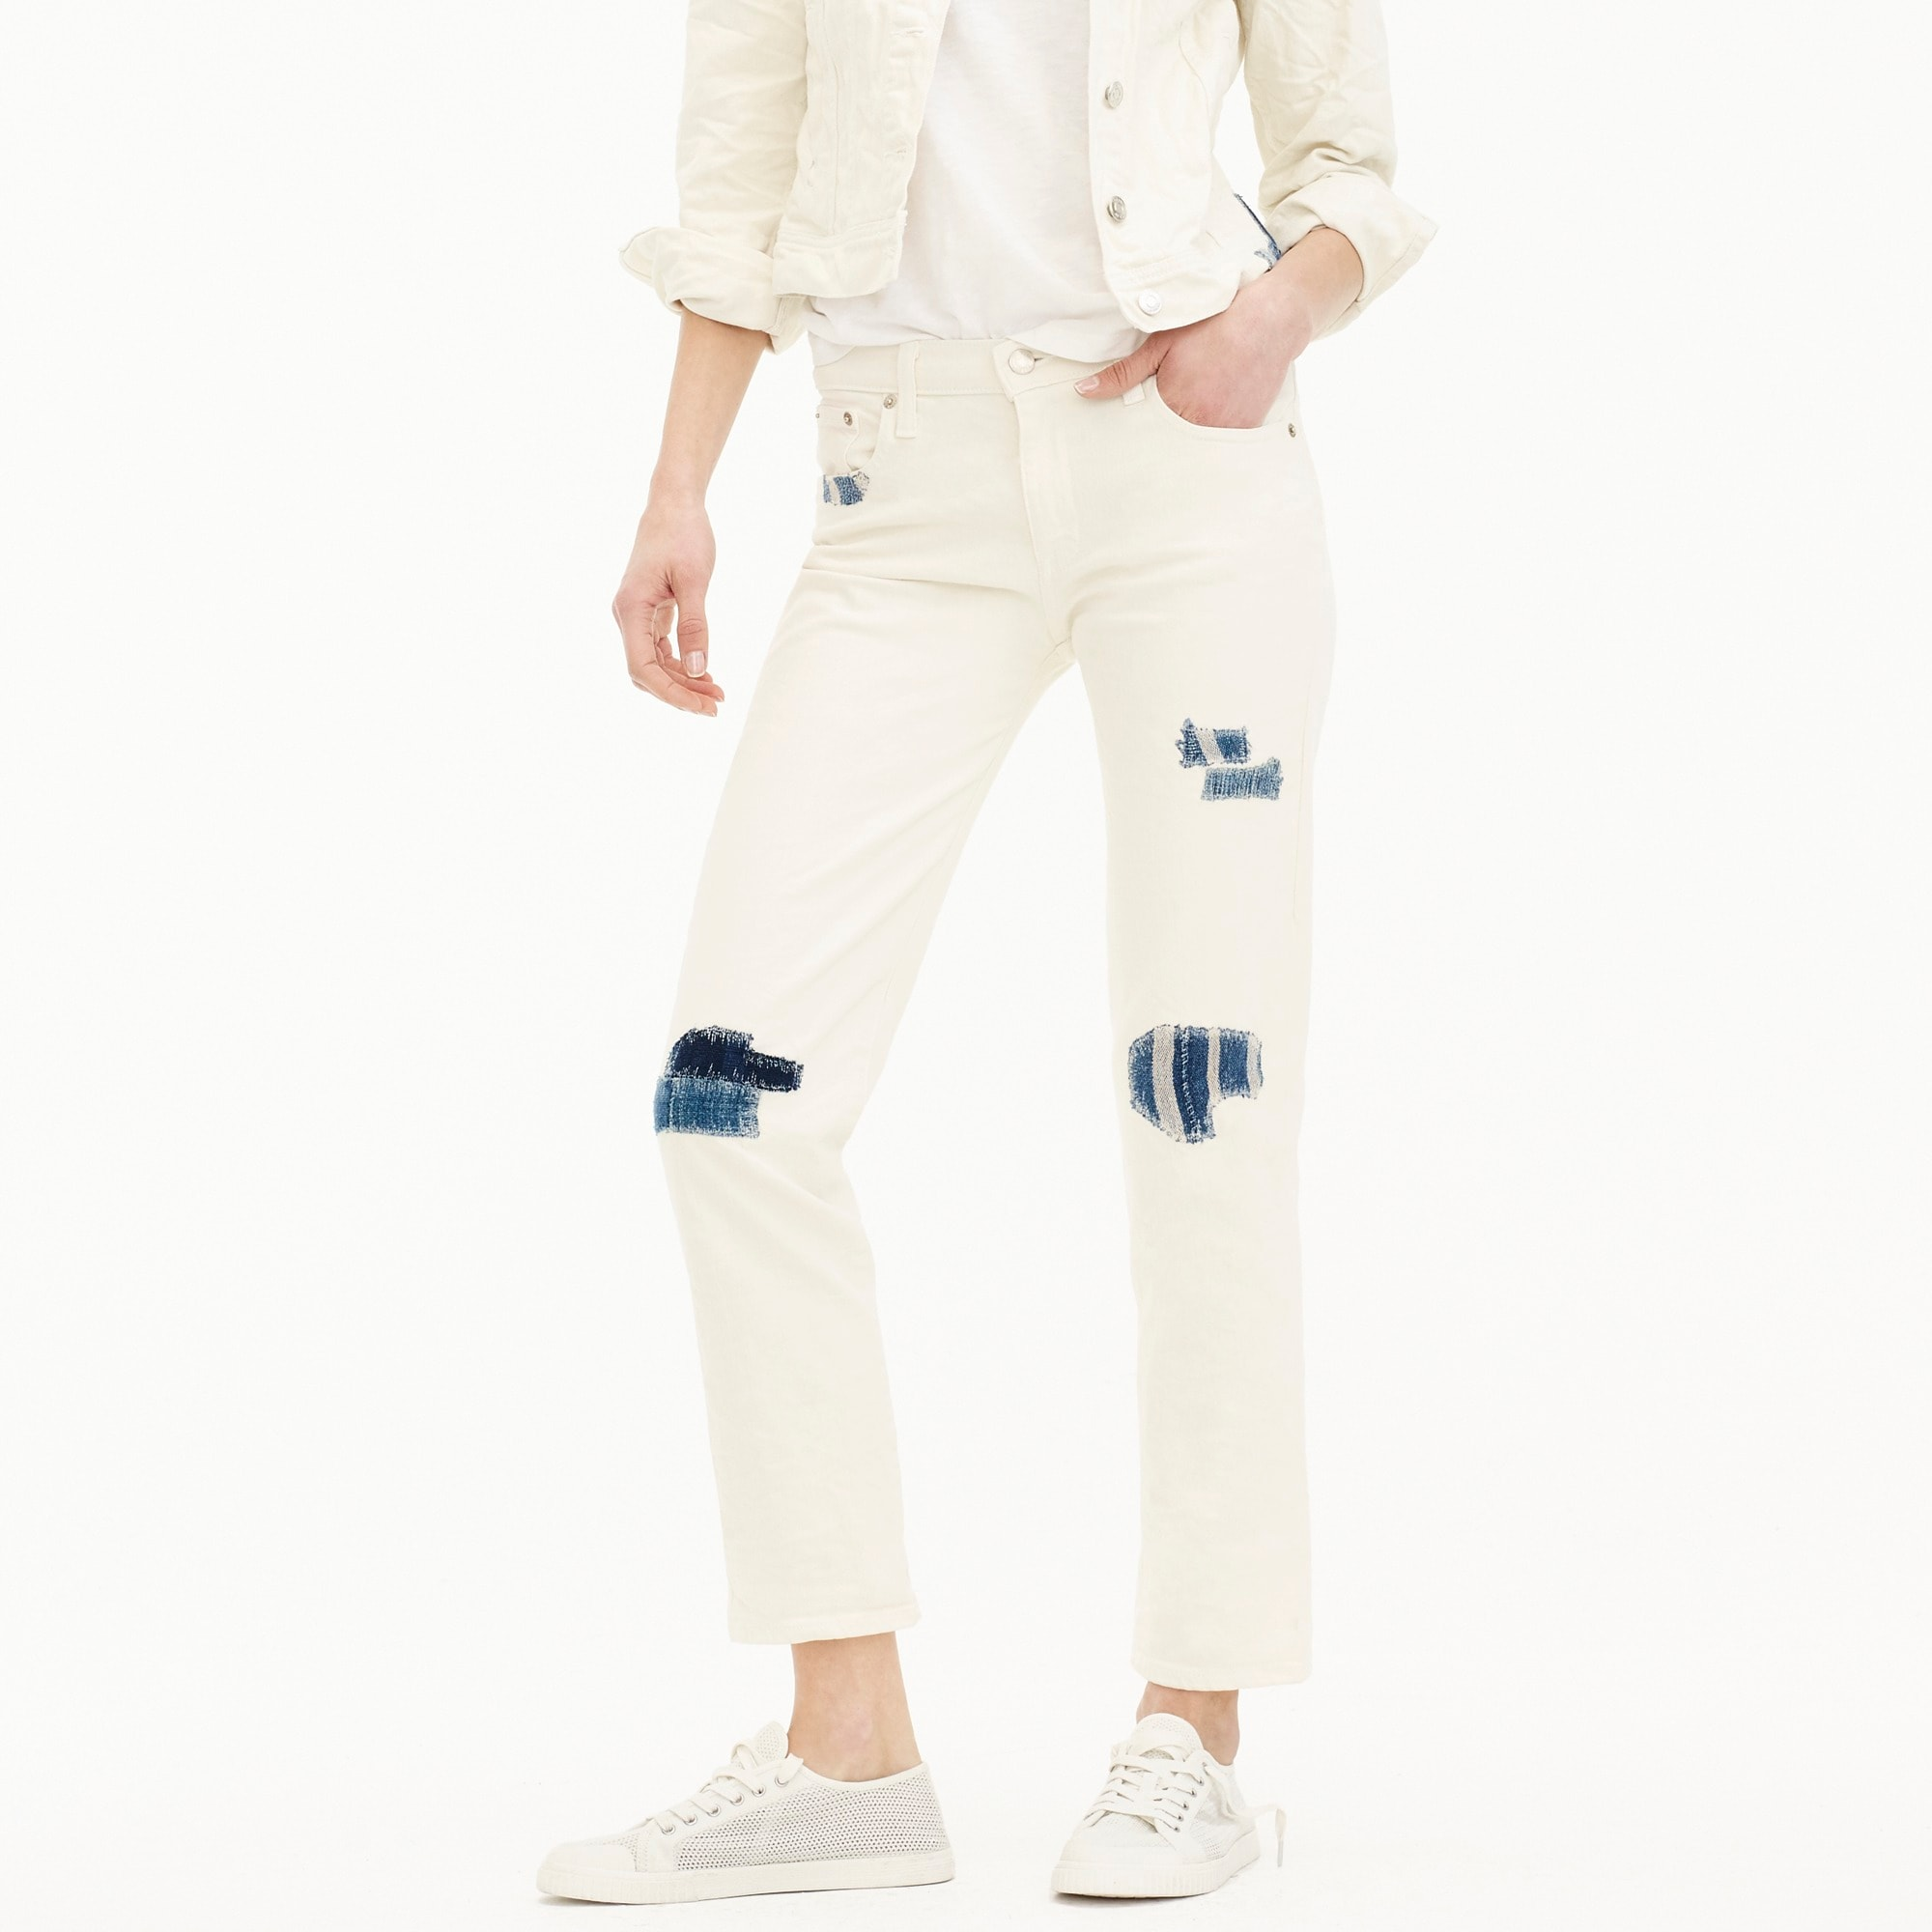 Sean Hornbeak for J.Crew slim boyfriend jean with indigo patches in white